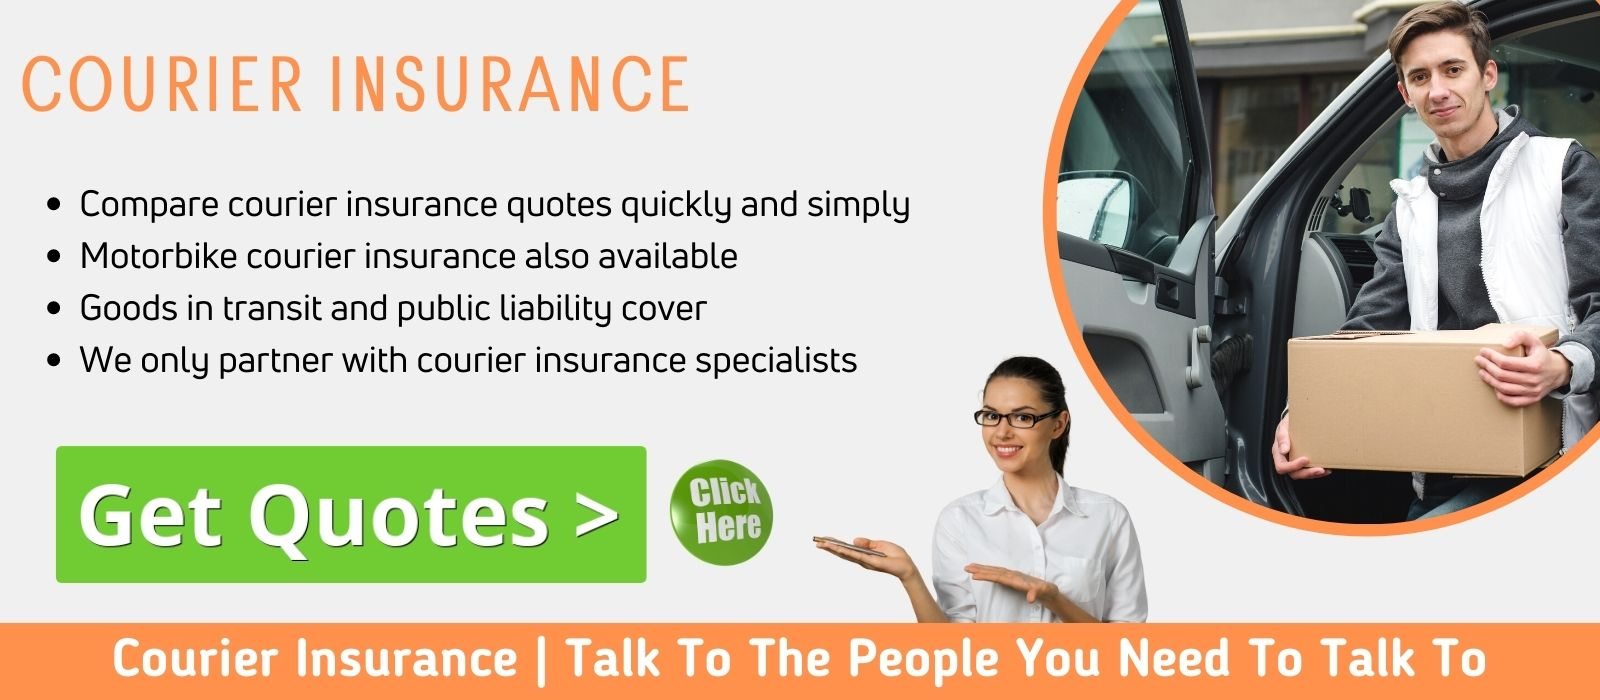 Compare courier van insurance quotes here.